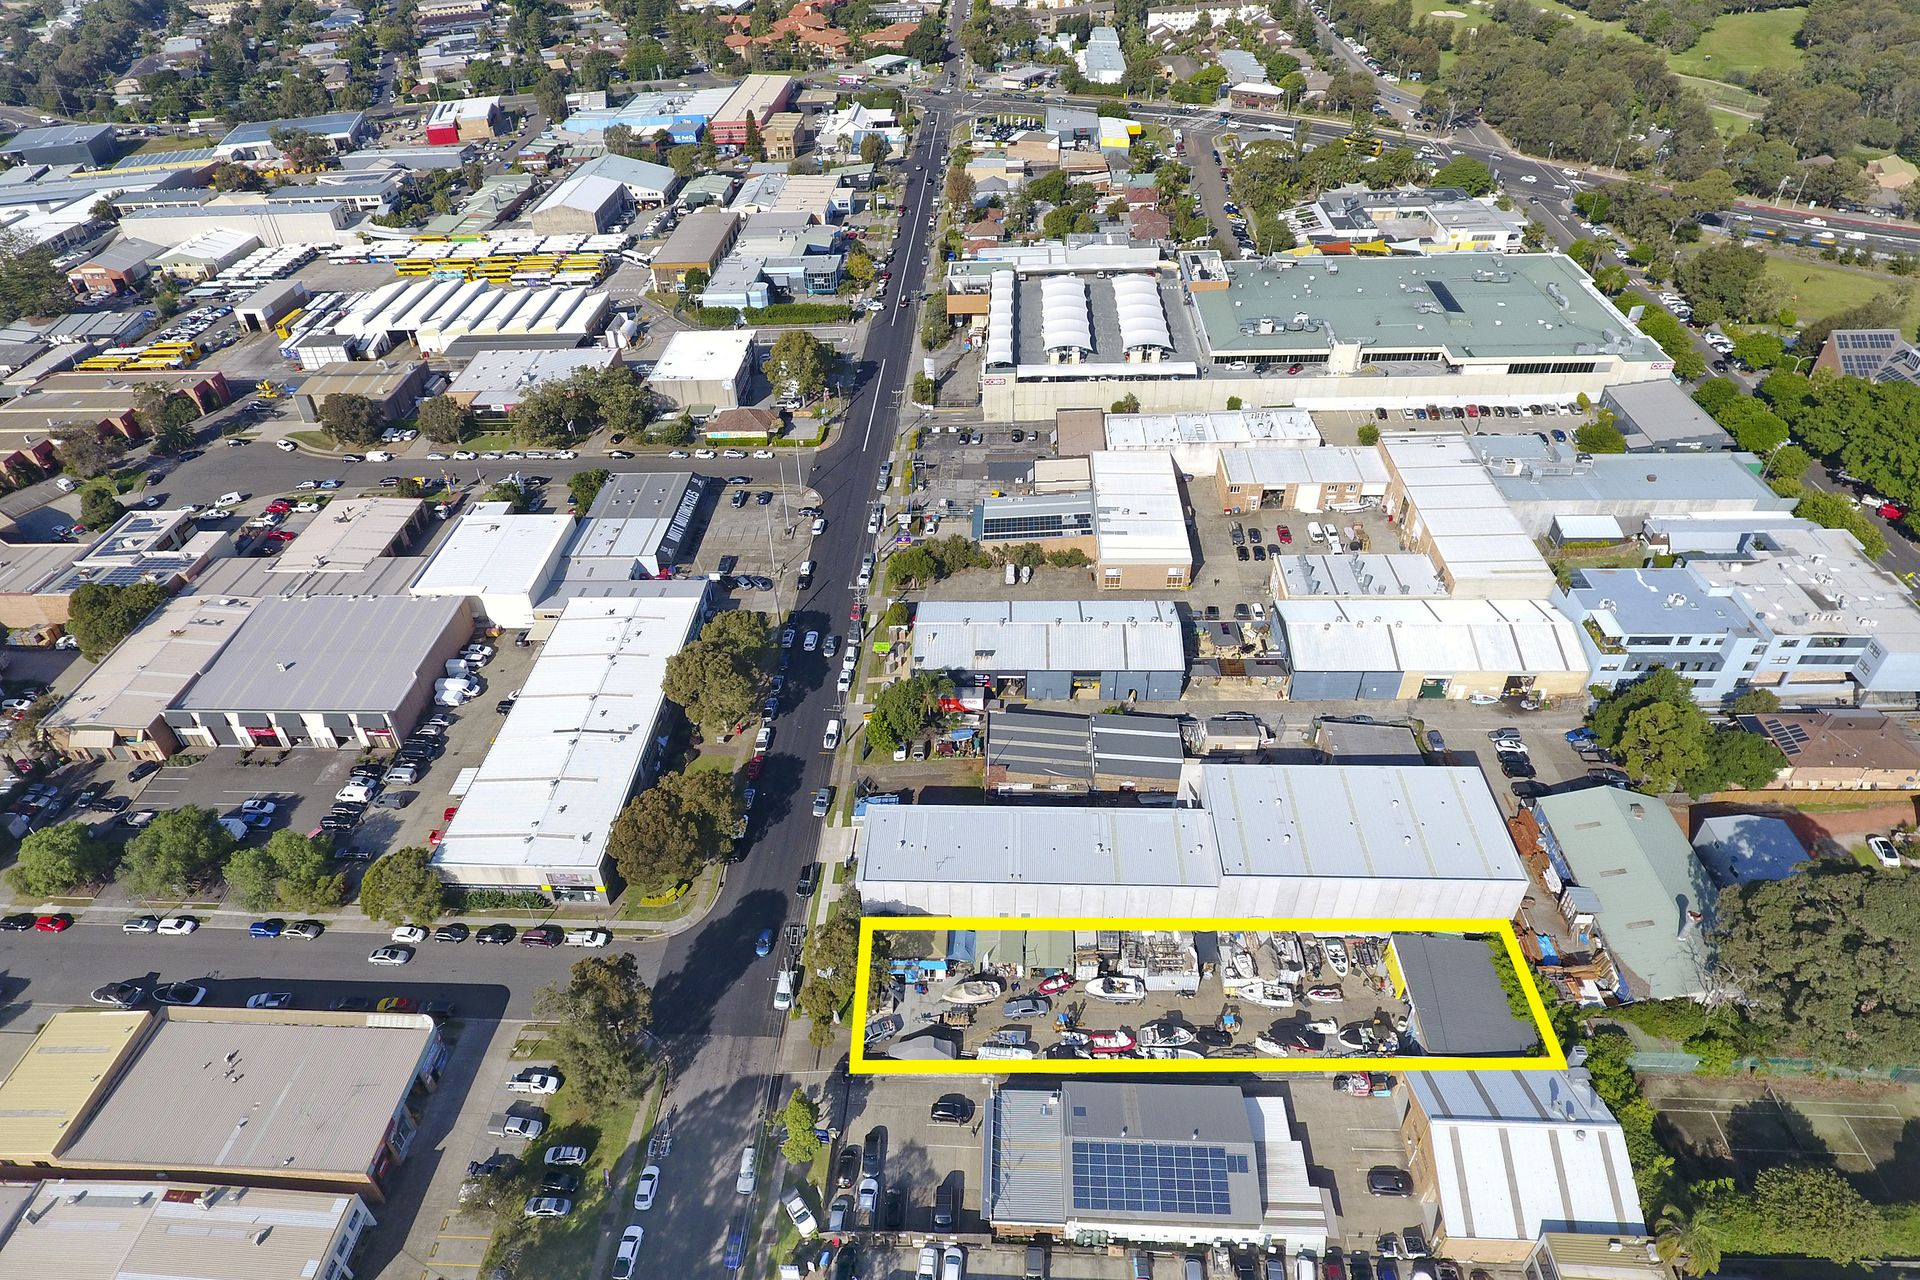 LARGE INDUSTRIAL SITE IN A HIGH PROFILE LOCATION